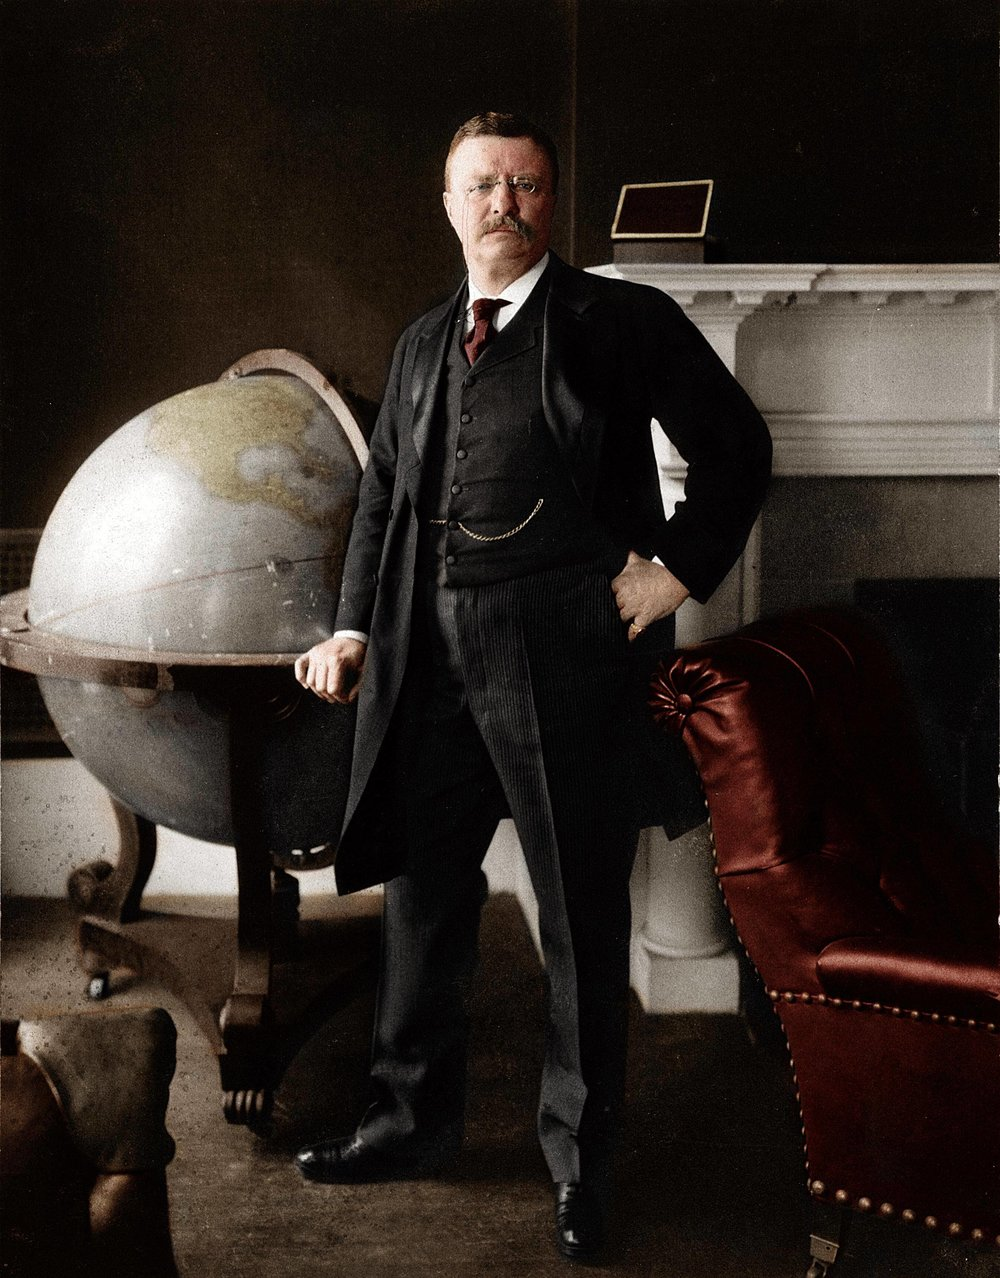 Theodore Roosevelt posing with a world globe on the 24 February 1903. Colorization by  Xander-Lionheart